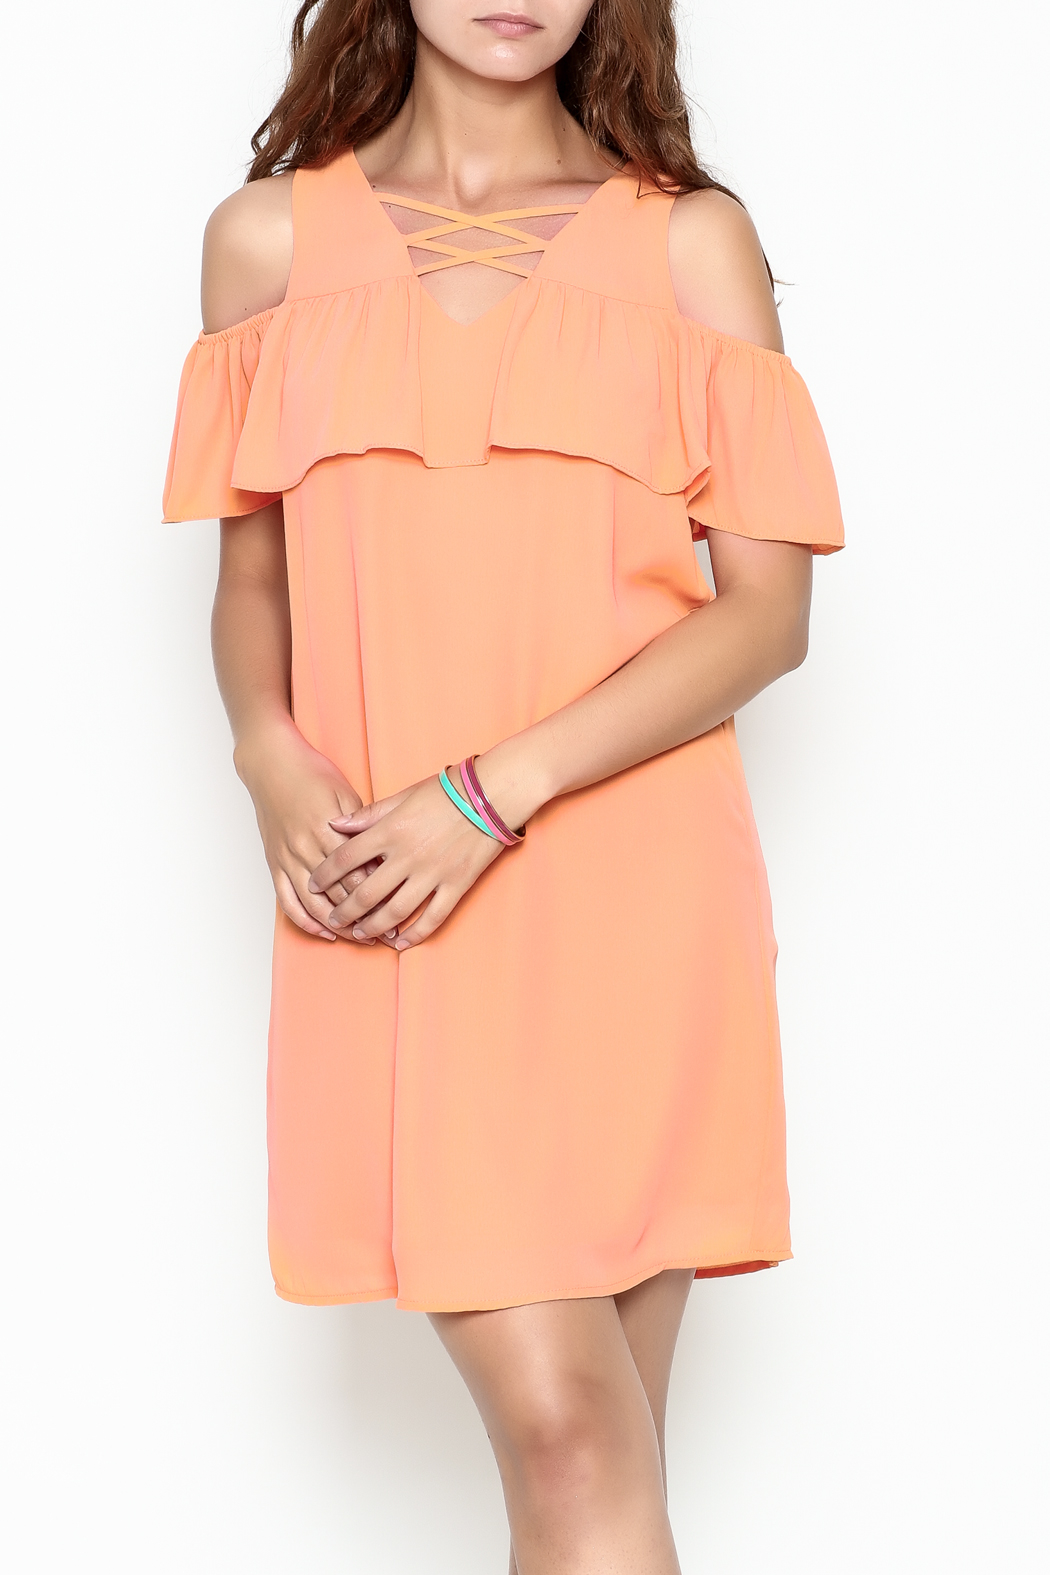 Skies Are Blue Tangerine Dreams Dress - Front Cropped Image